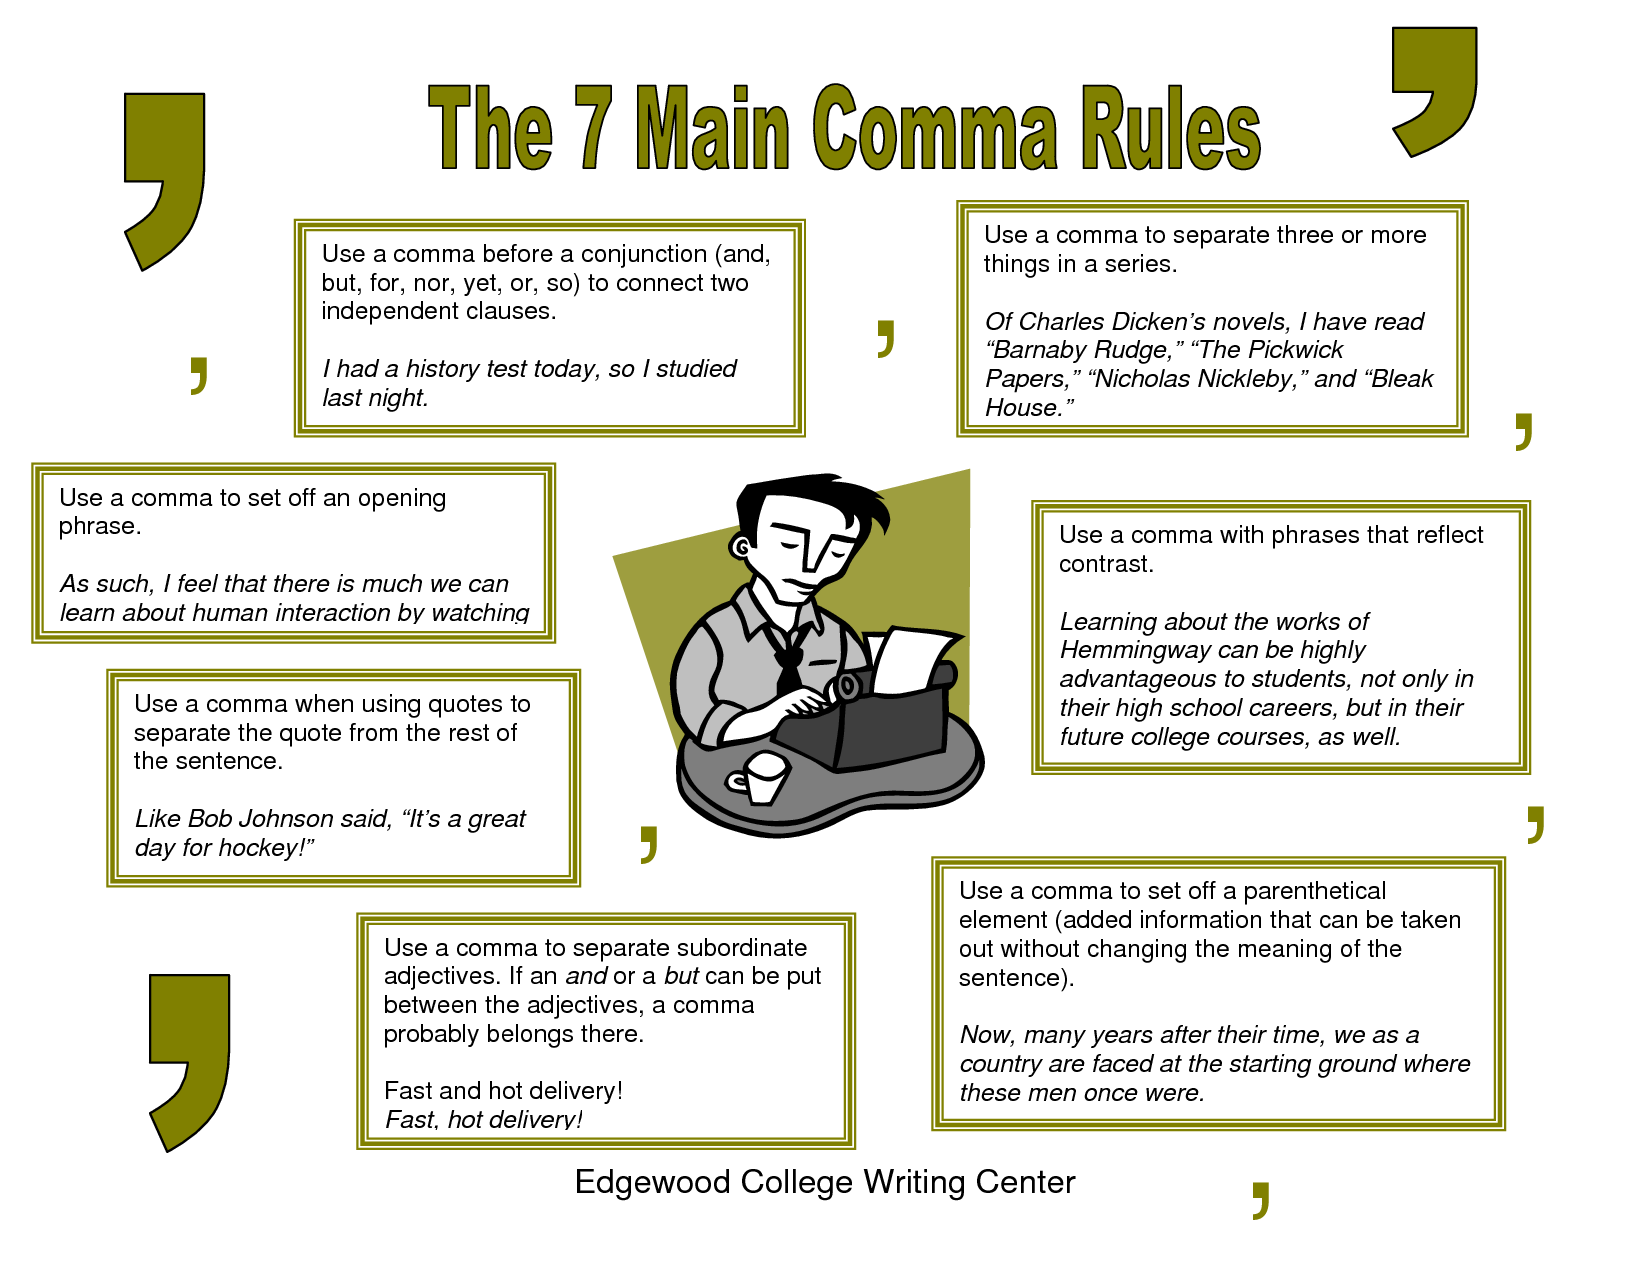 Rules For Using Commas